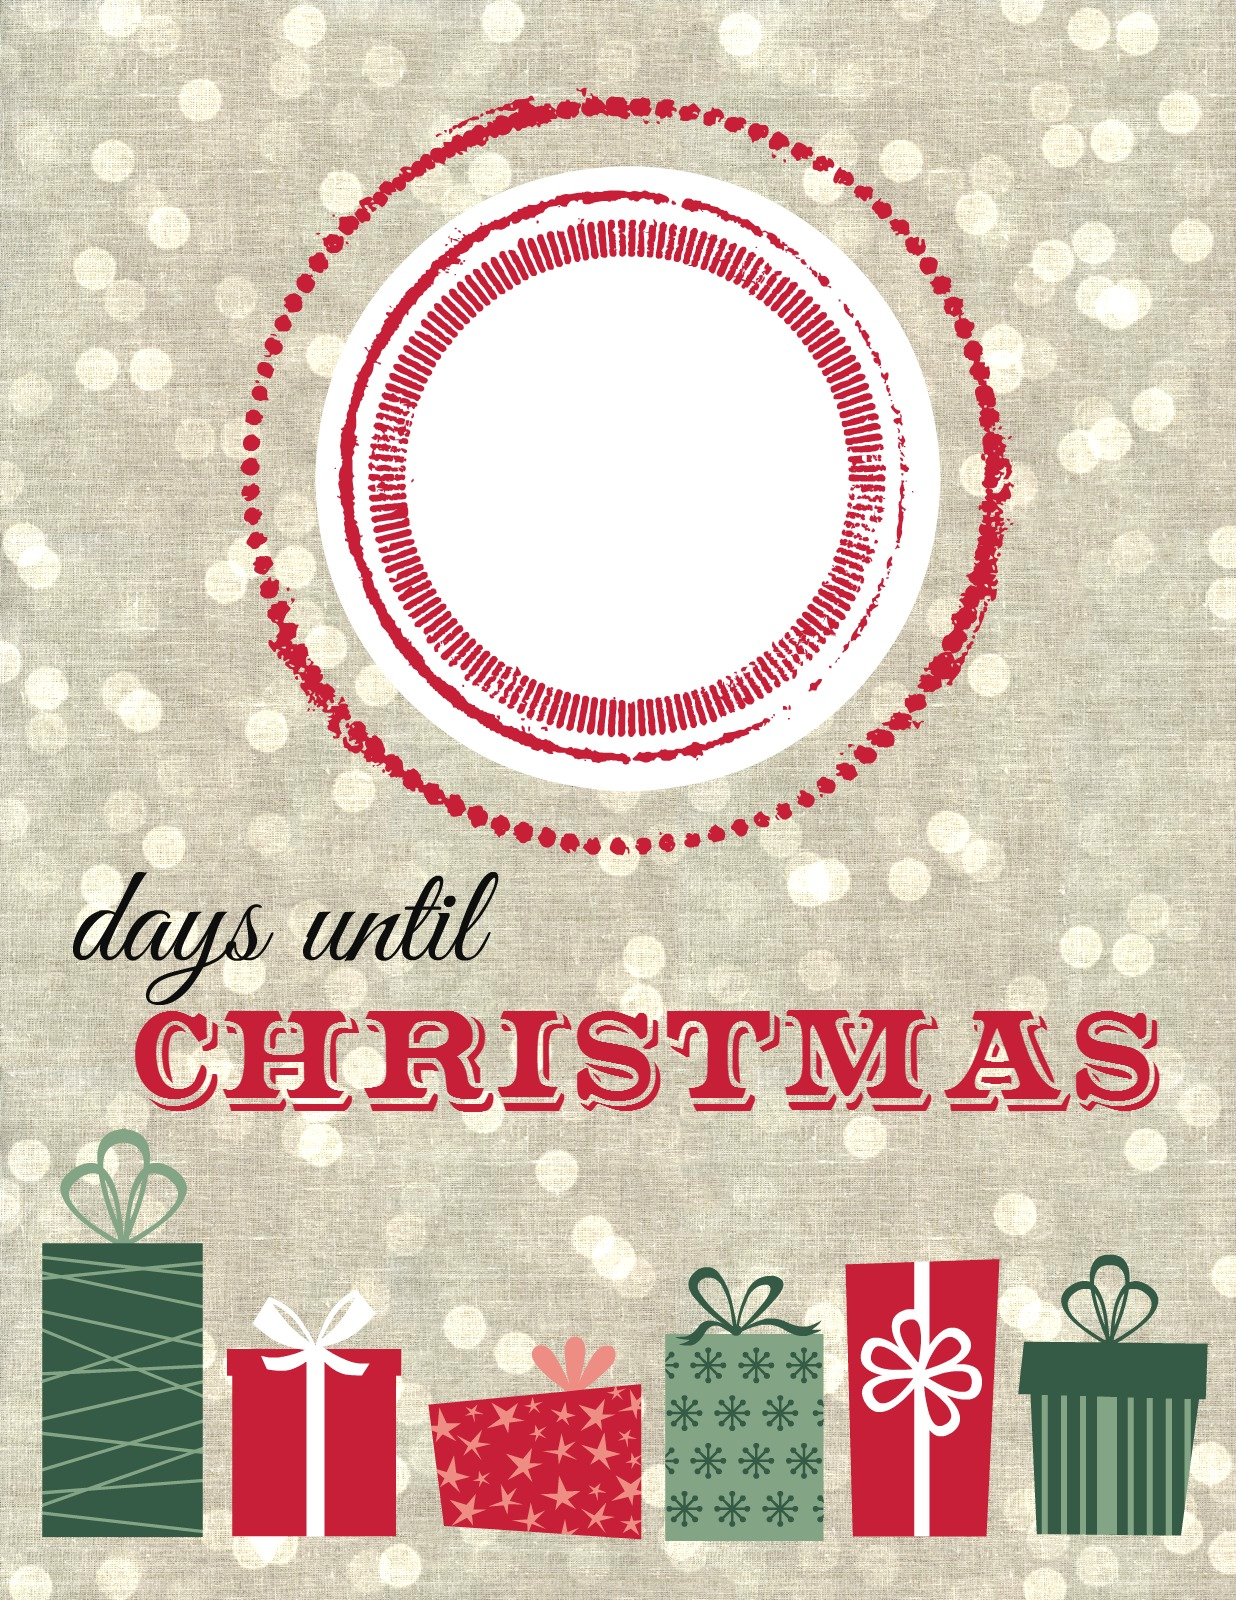 How Many Minutes Till Christmas.Christmas Countdown Printable The Elm Life